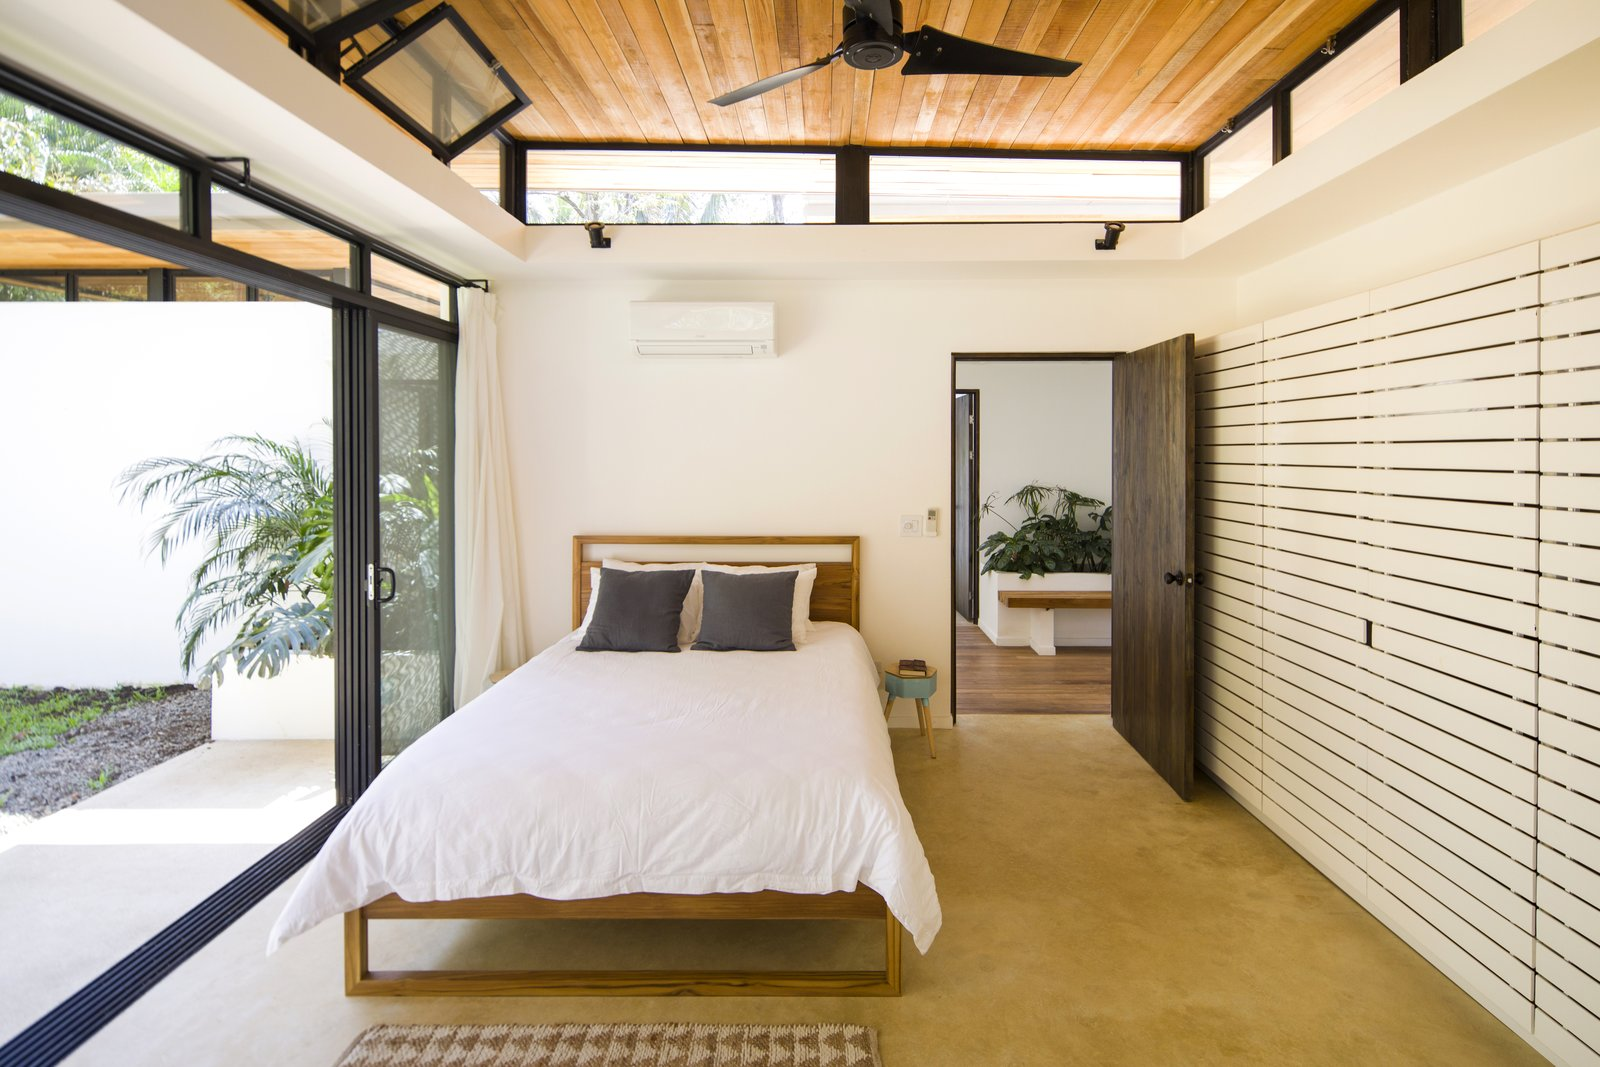 Similar to the open spaces, the sleeping quarters have operable, sliding glass doors and clerestory windows allow the tropical air to freely pass between the exterior and interior.  Photo 7 of 11 in Decompress at This Boutique Hotel and Yoga Retreat in the Costa Rican Jungle